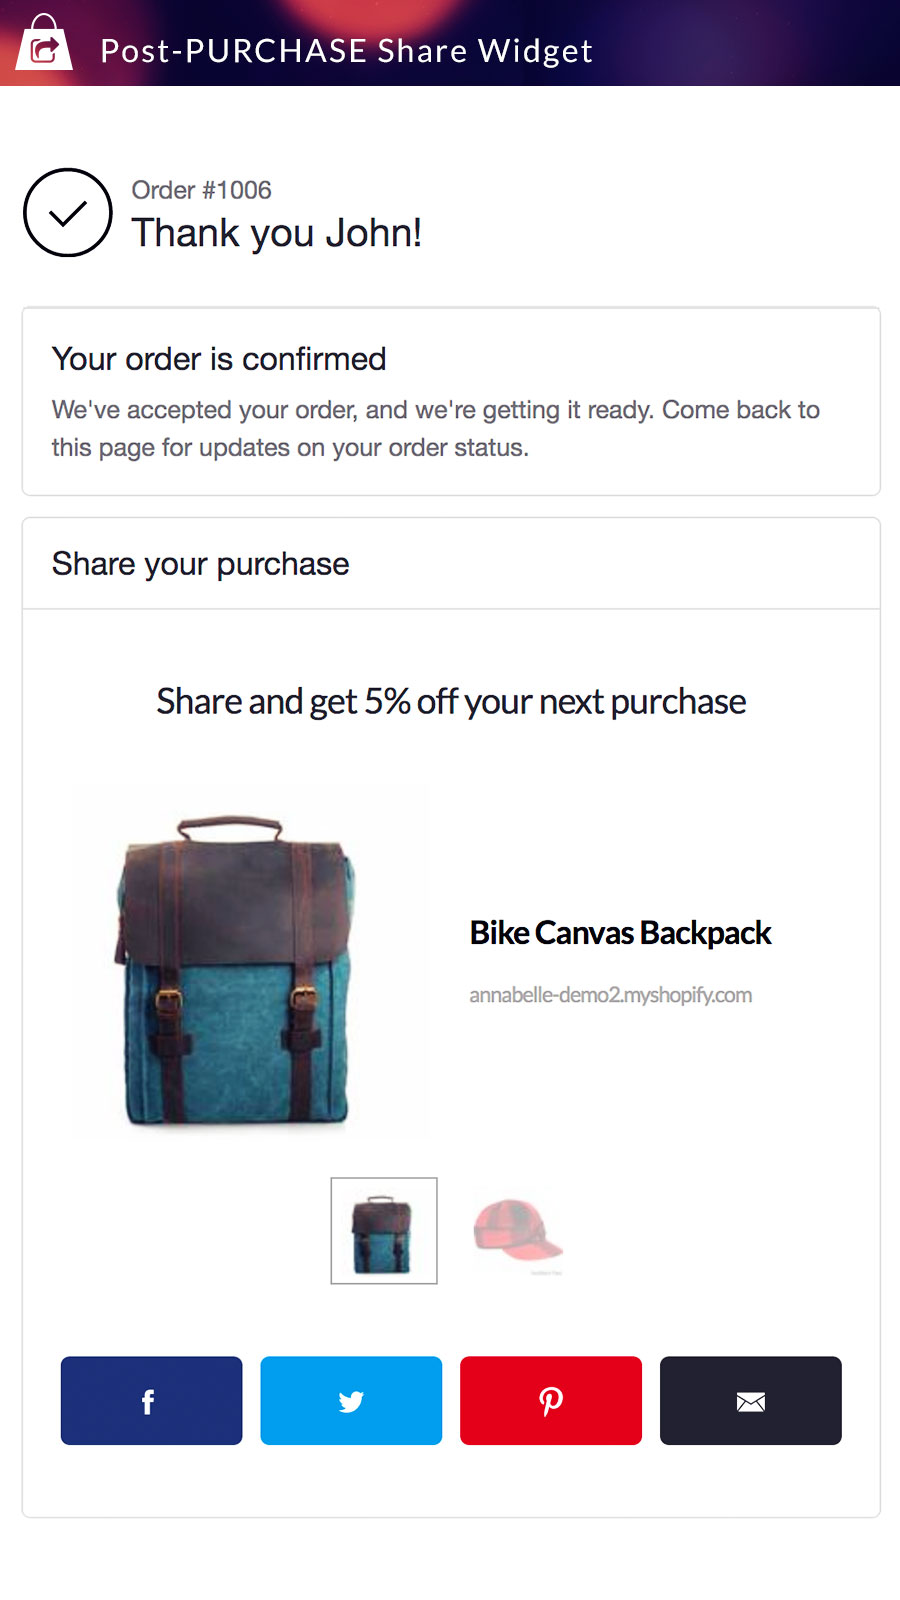 Post-purchase share incentive widget